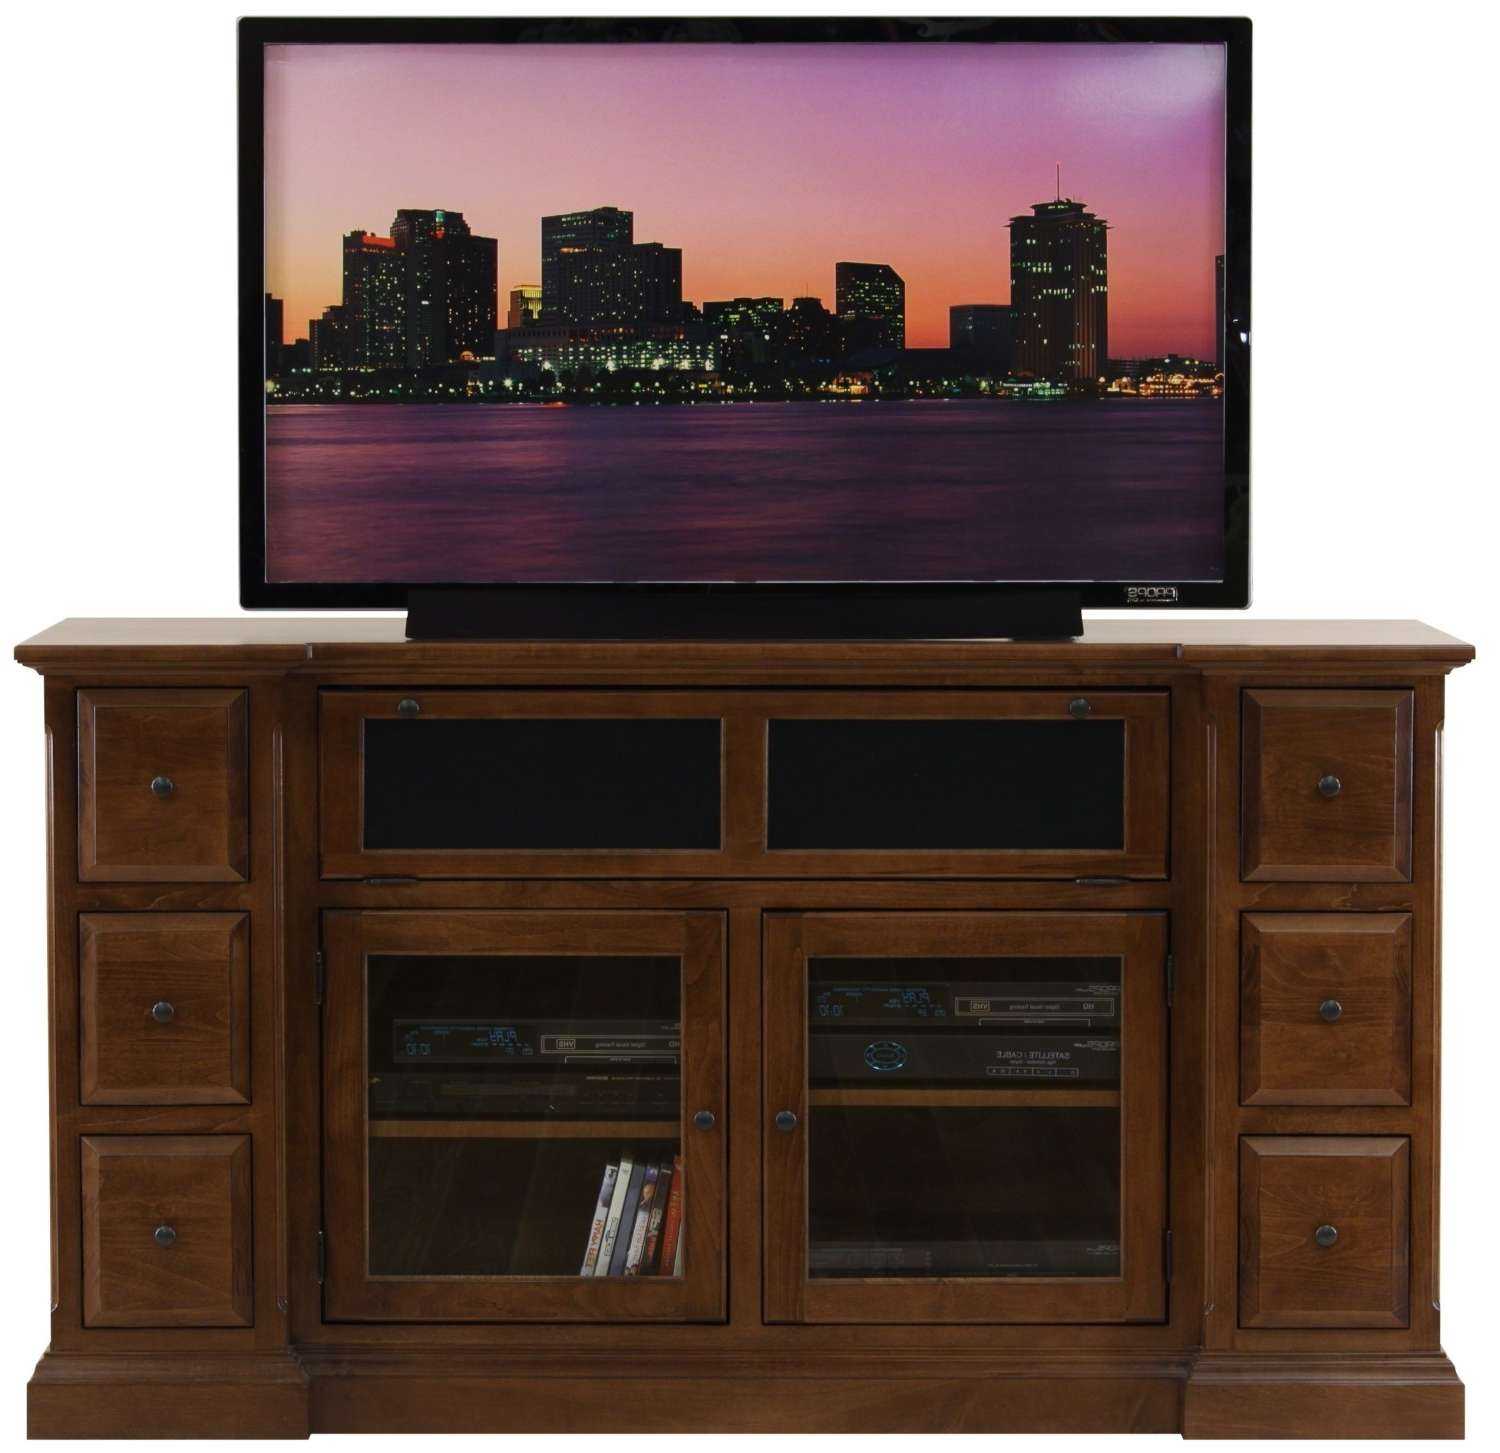 wood sale console table profile stands with dark home for low tall design chest drawers doors television cabinet tables media unit furniture screens stand tv flat inch